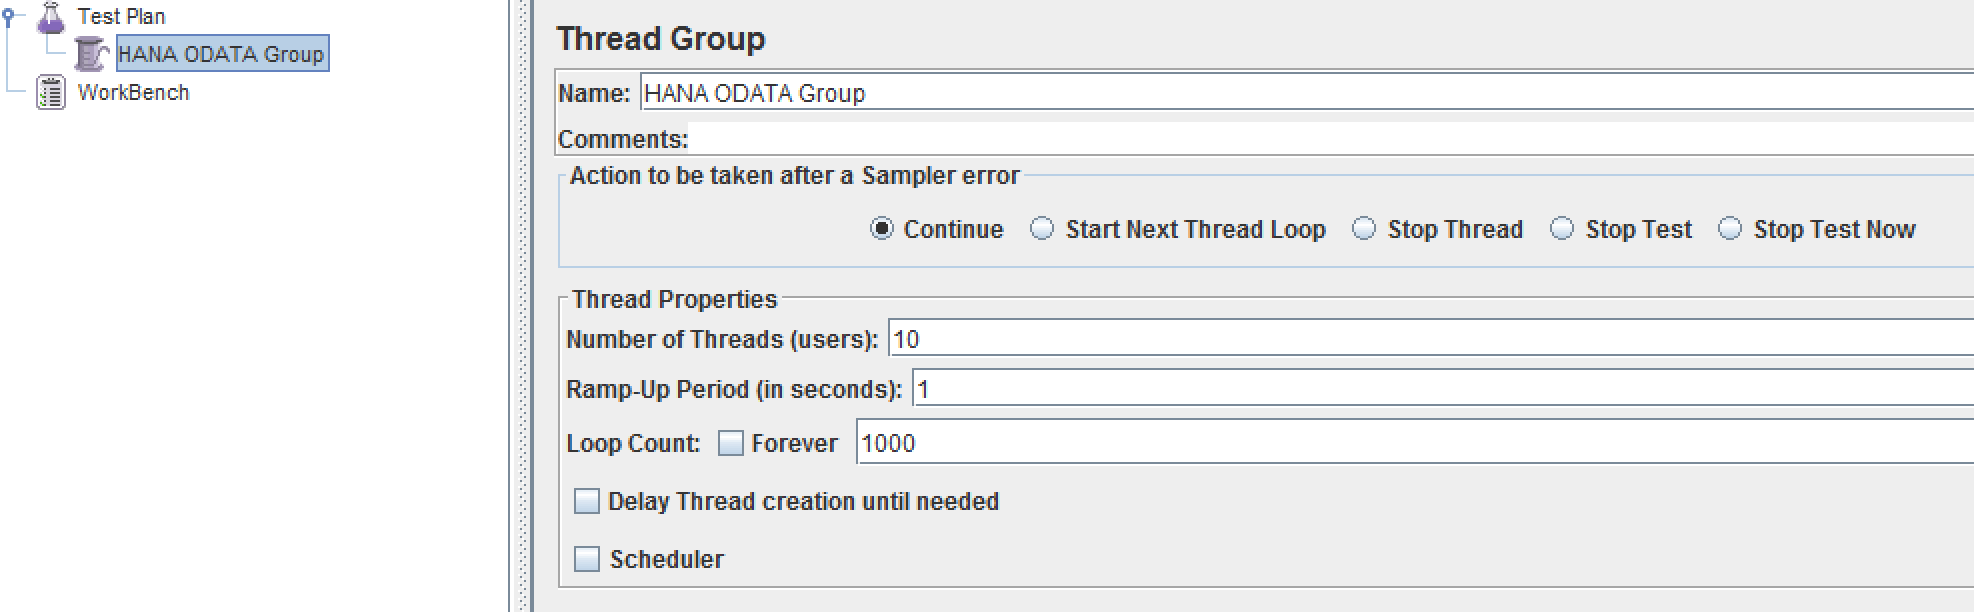 ODATA_Thread_Group.png